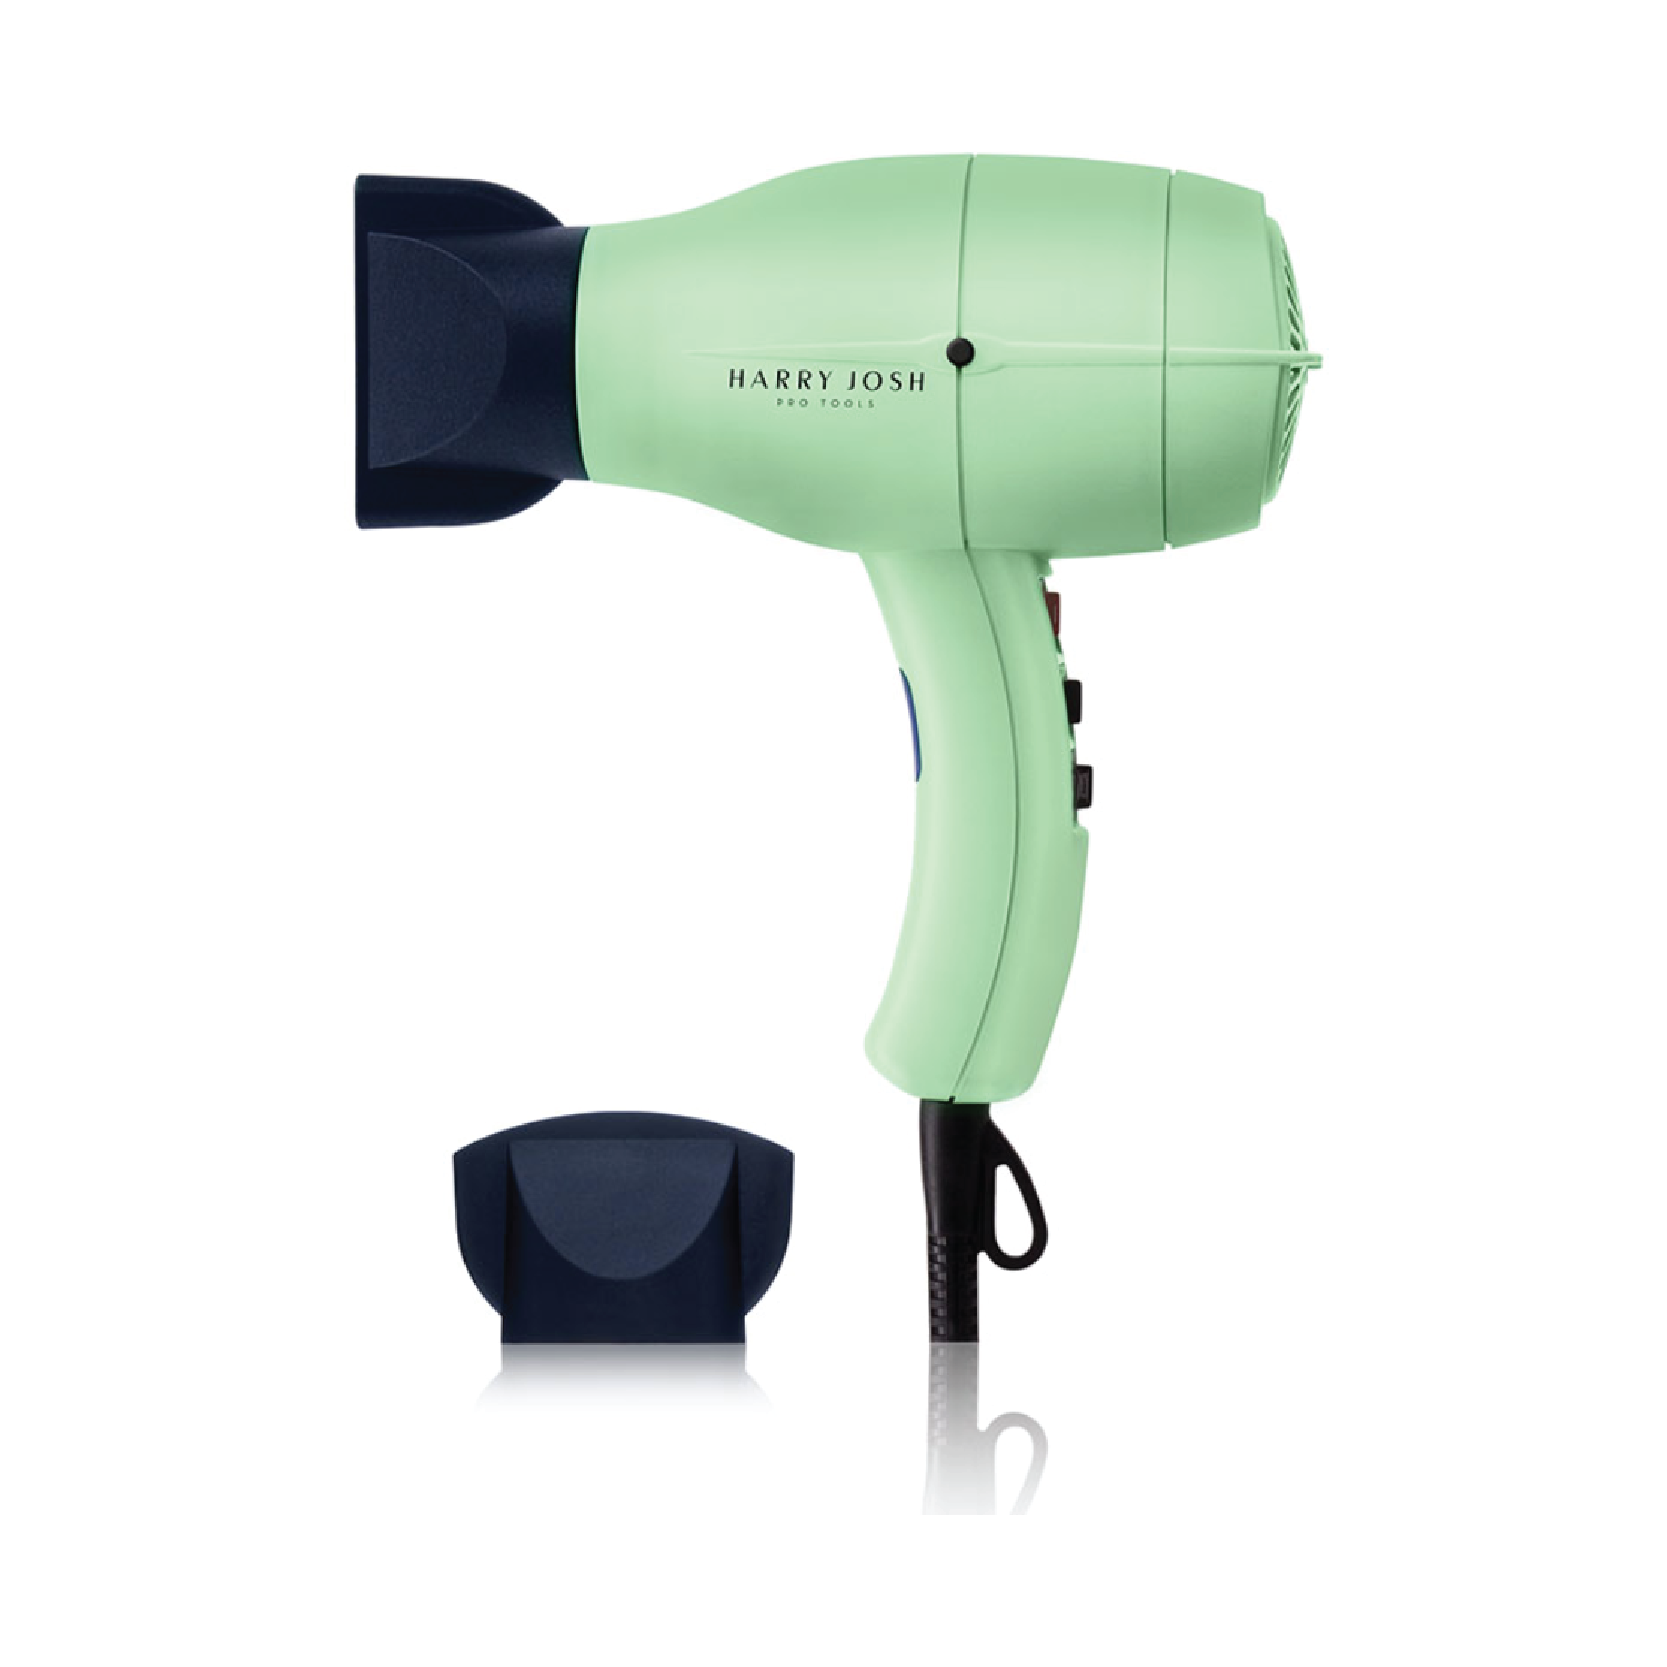 Harry Josh Pro Dryer 2000 - $249 at DermstoreBoys use blowdryers too. This lightweight option offers several heat and cold options and comes with styling attachment. Plus, you can steal this from time to time as well.